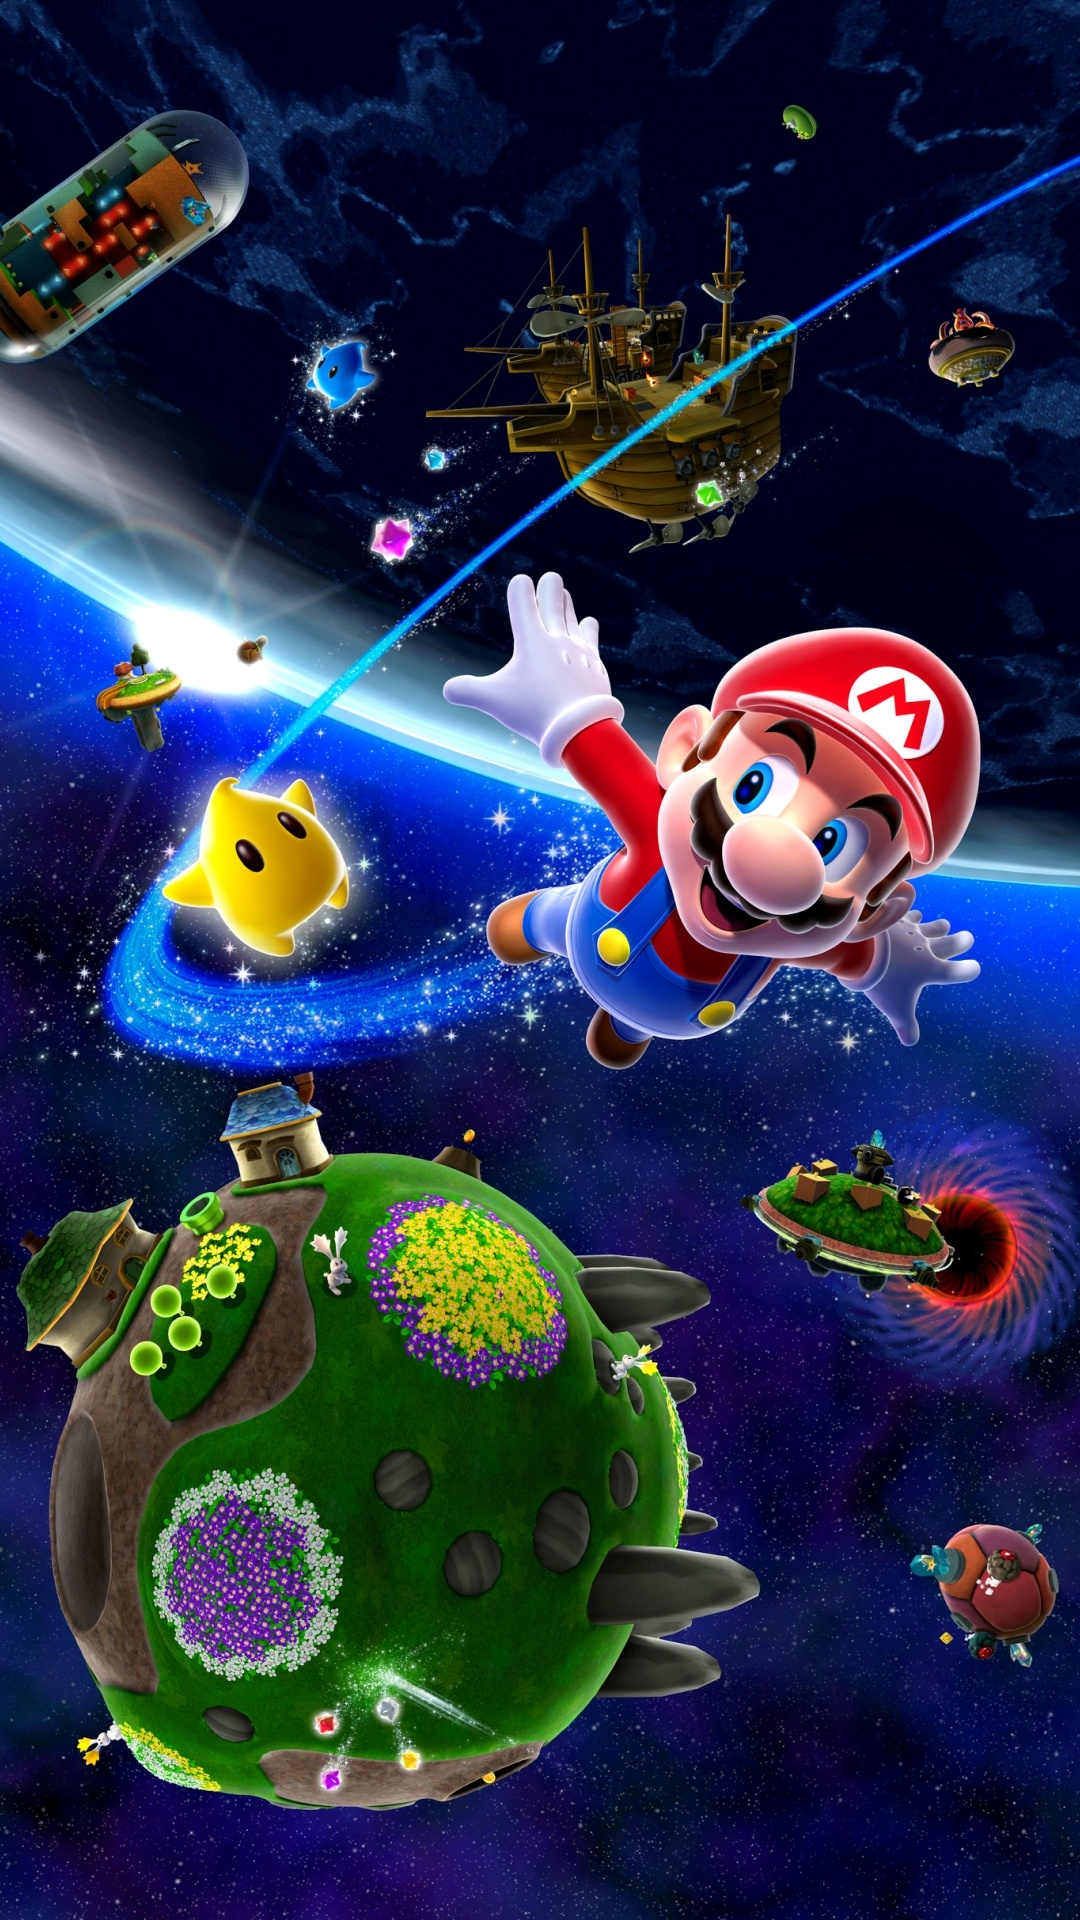 Super Mario Galaxy Wallpapers 1080x1920 789559